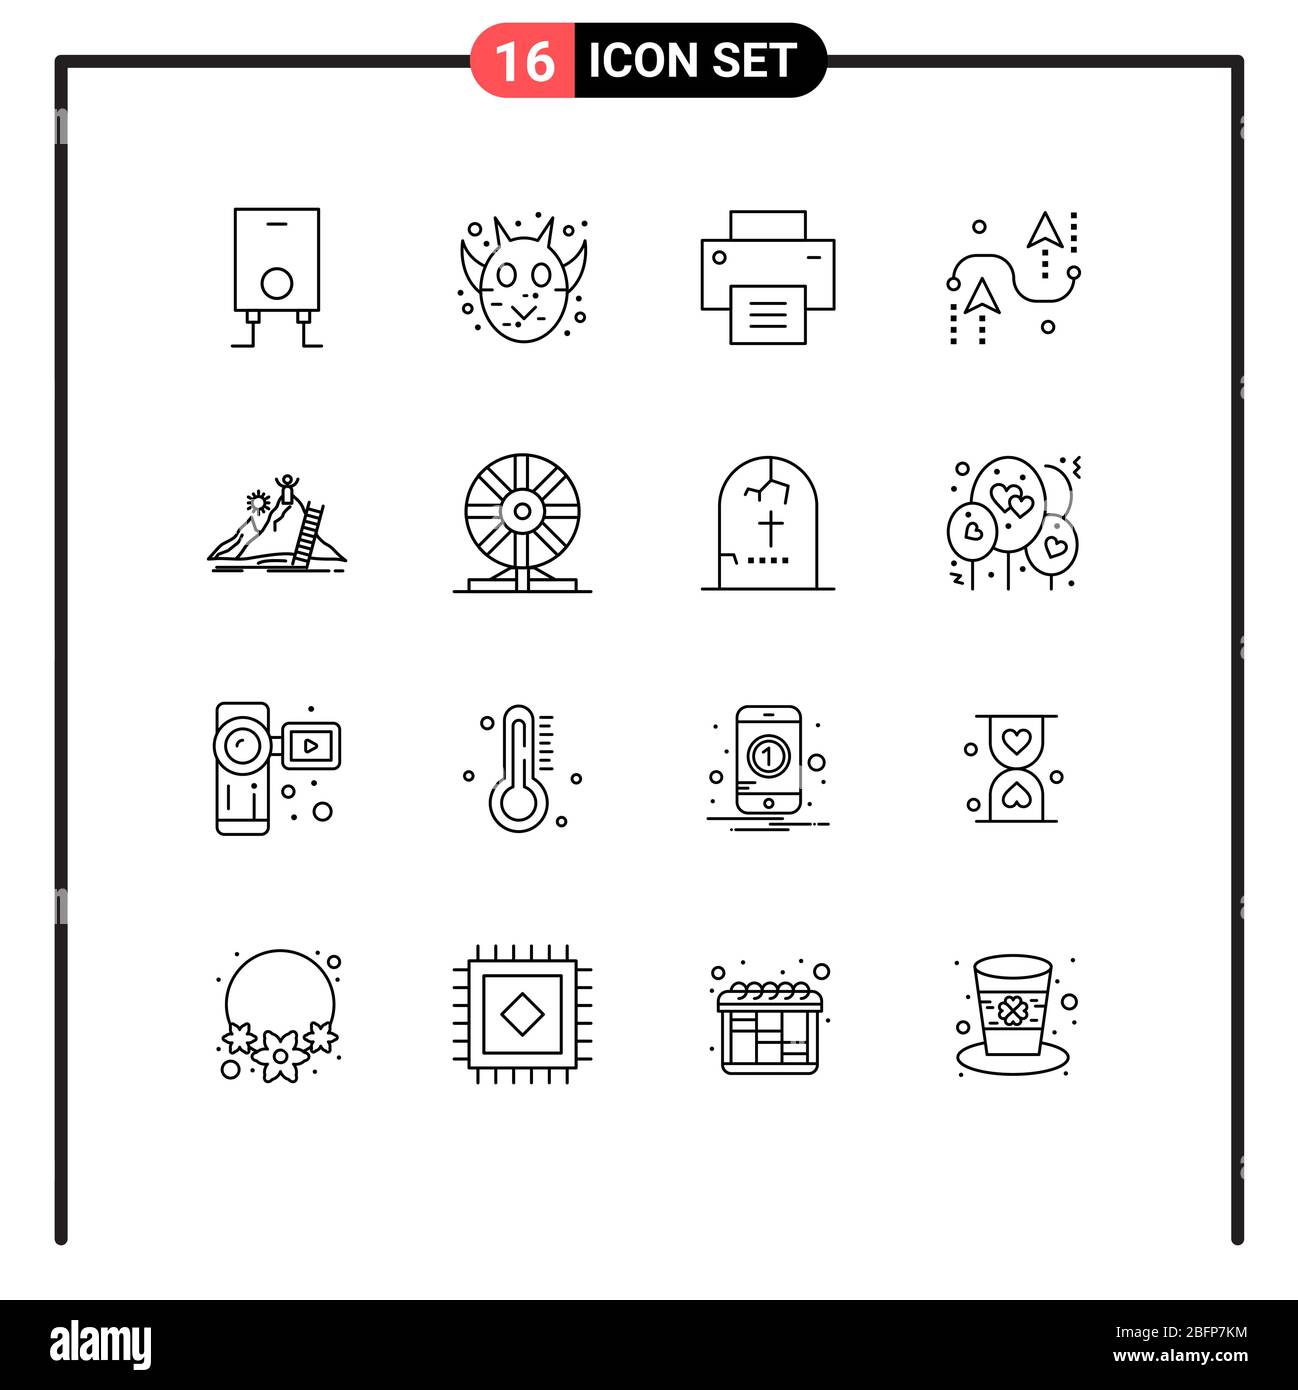 User Interface Pack of 16 Basic Outlines of personal, programing, interface, development, curves Editable Vector Design Elements Stock Vector